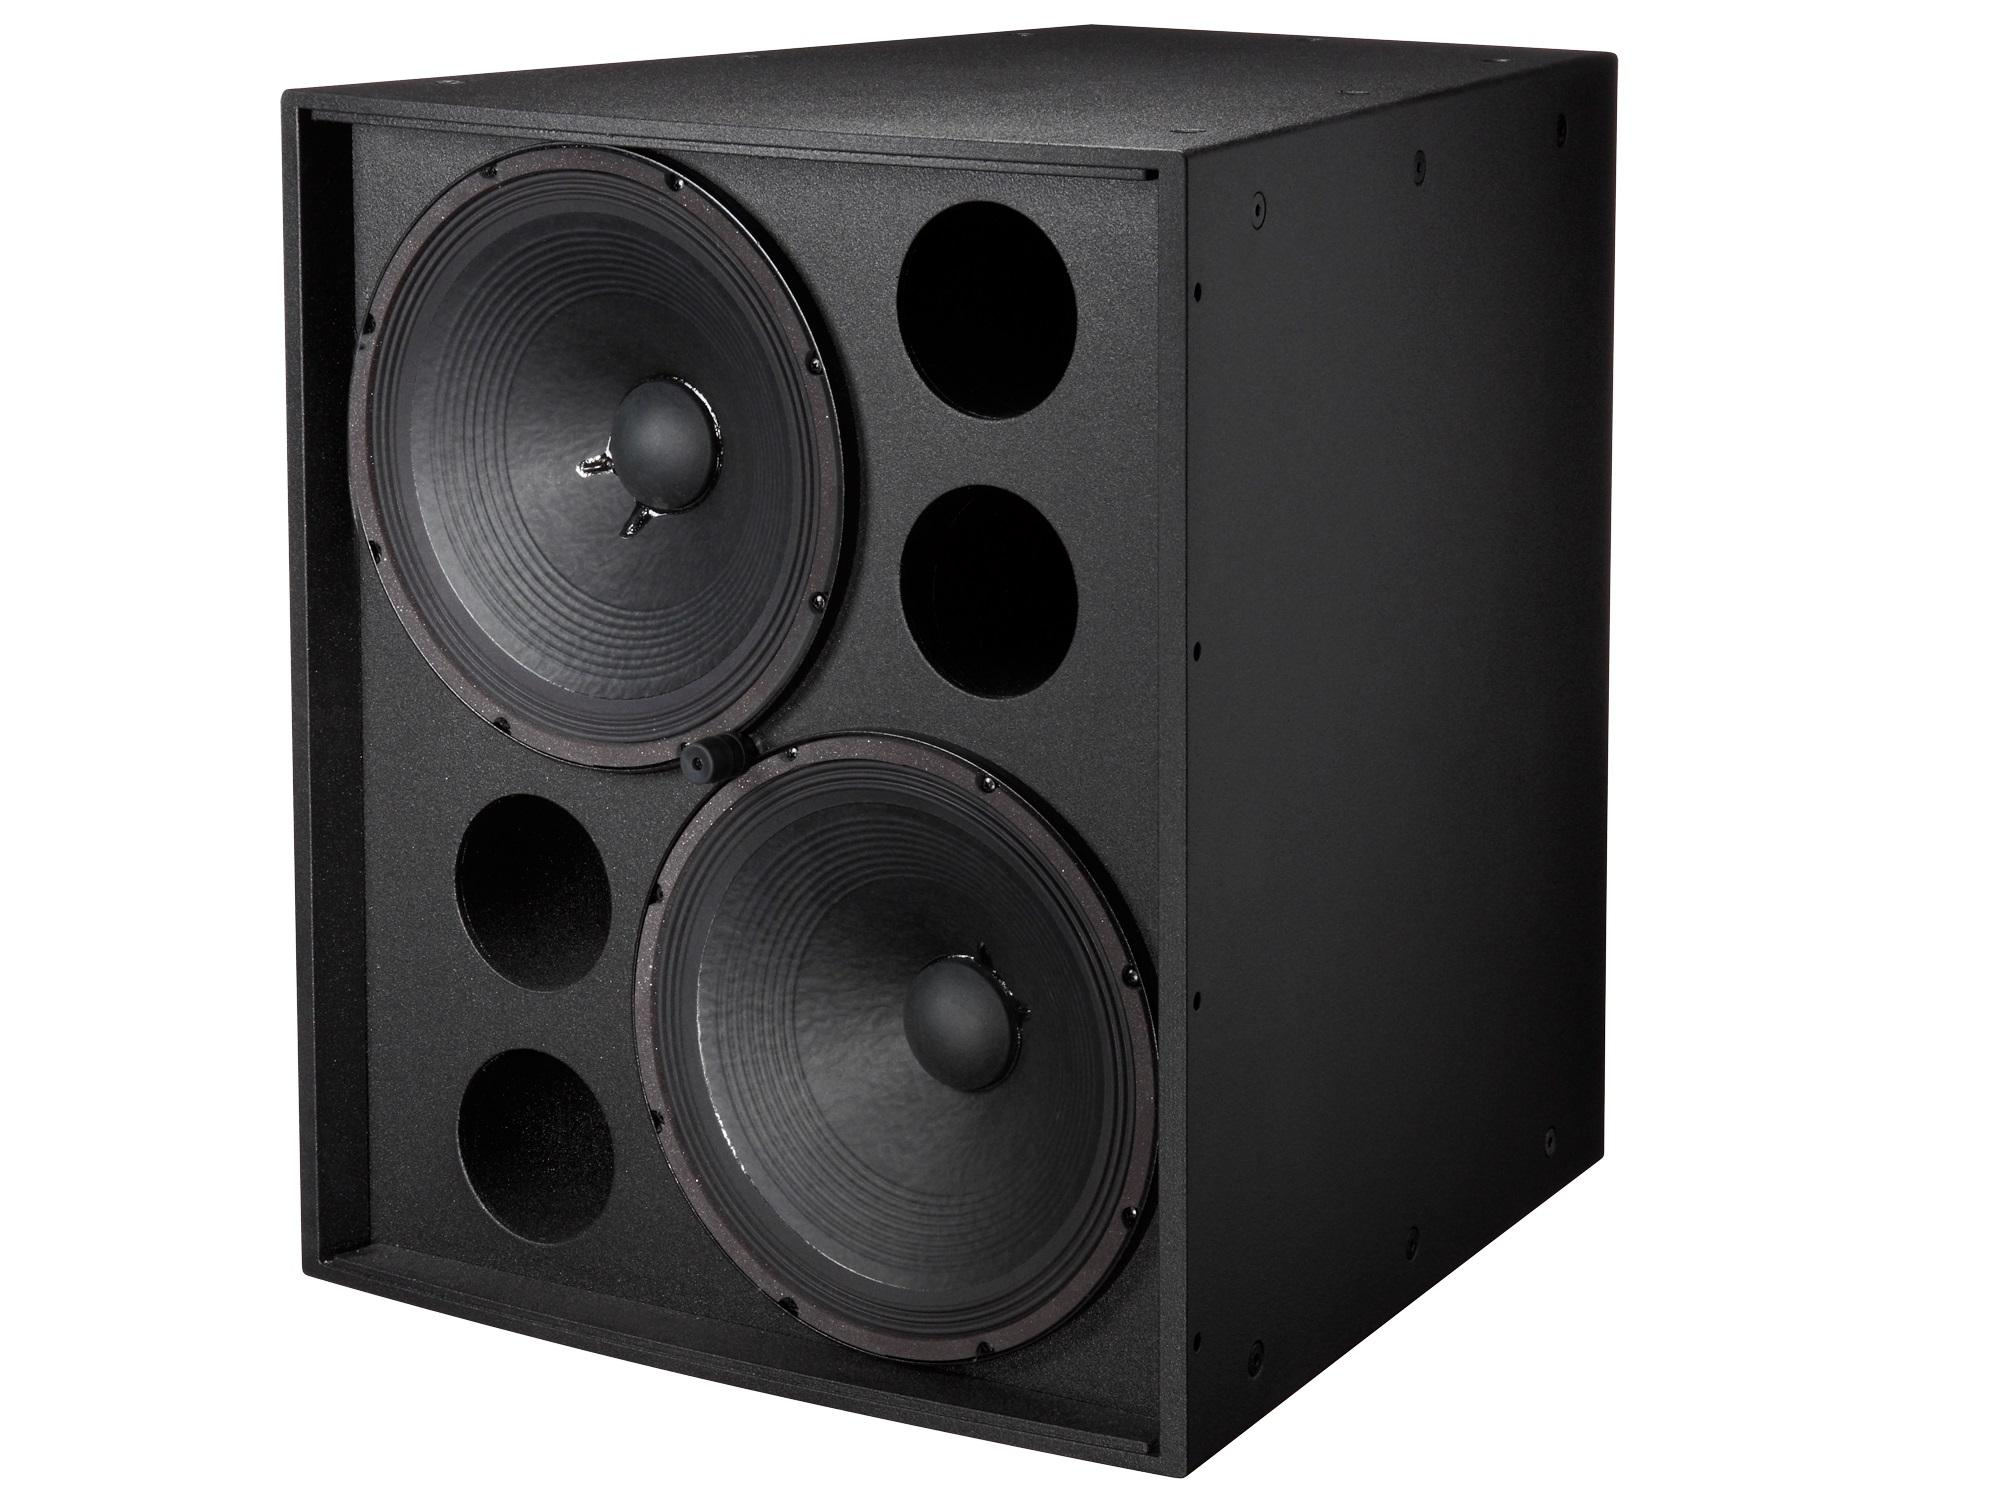 Electro-Voice EVF2151DPIB Dual 15 inch Front-Loaded Subwoofer/Evcoat/Pi-Weatherized/Black